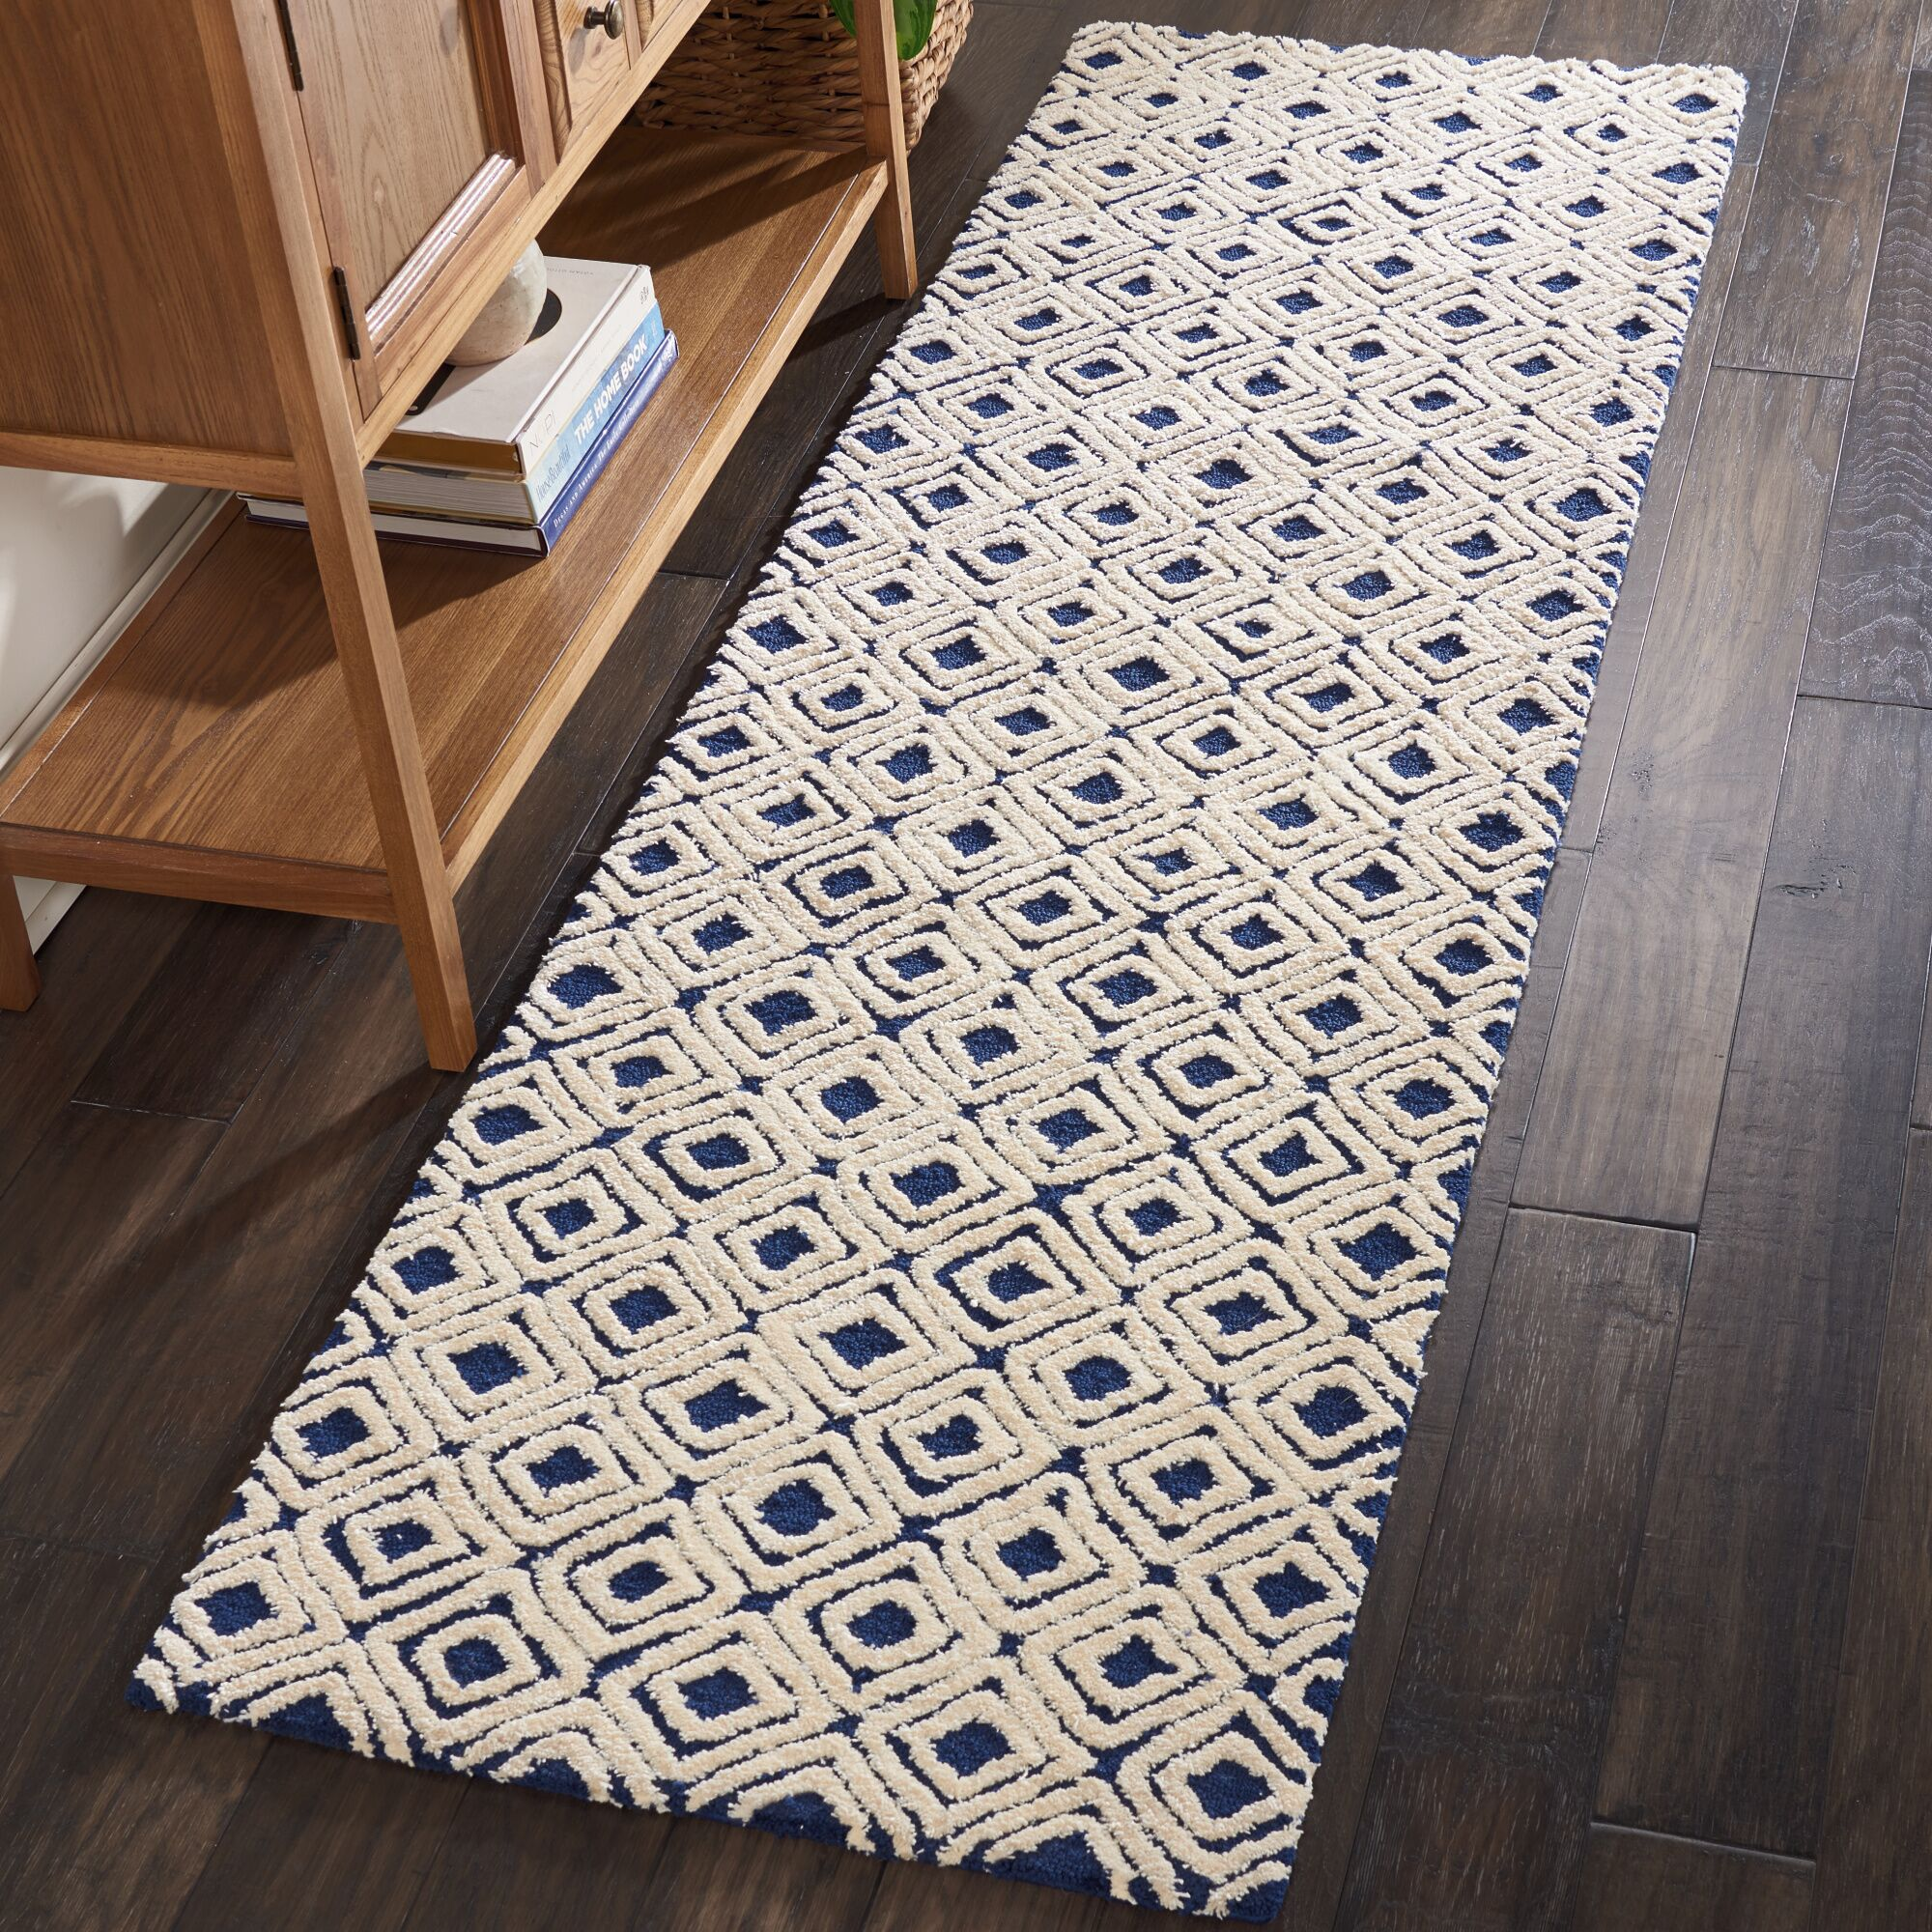 Chism Deco Hand-Tufted Navy/Ivory Area Rug Rug Size: Rectangle 9'6